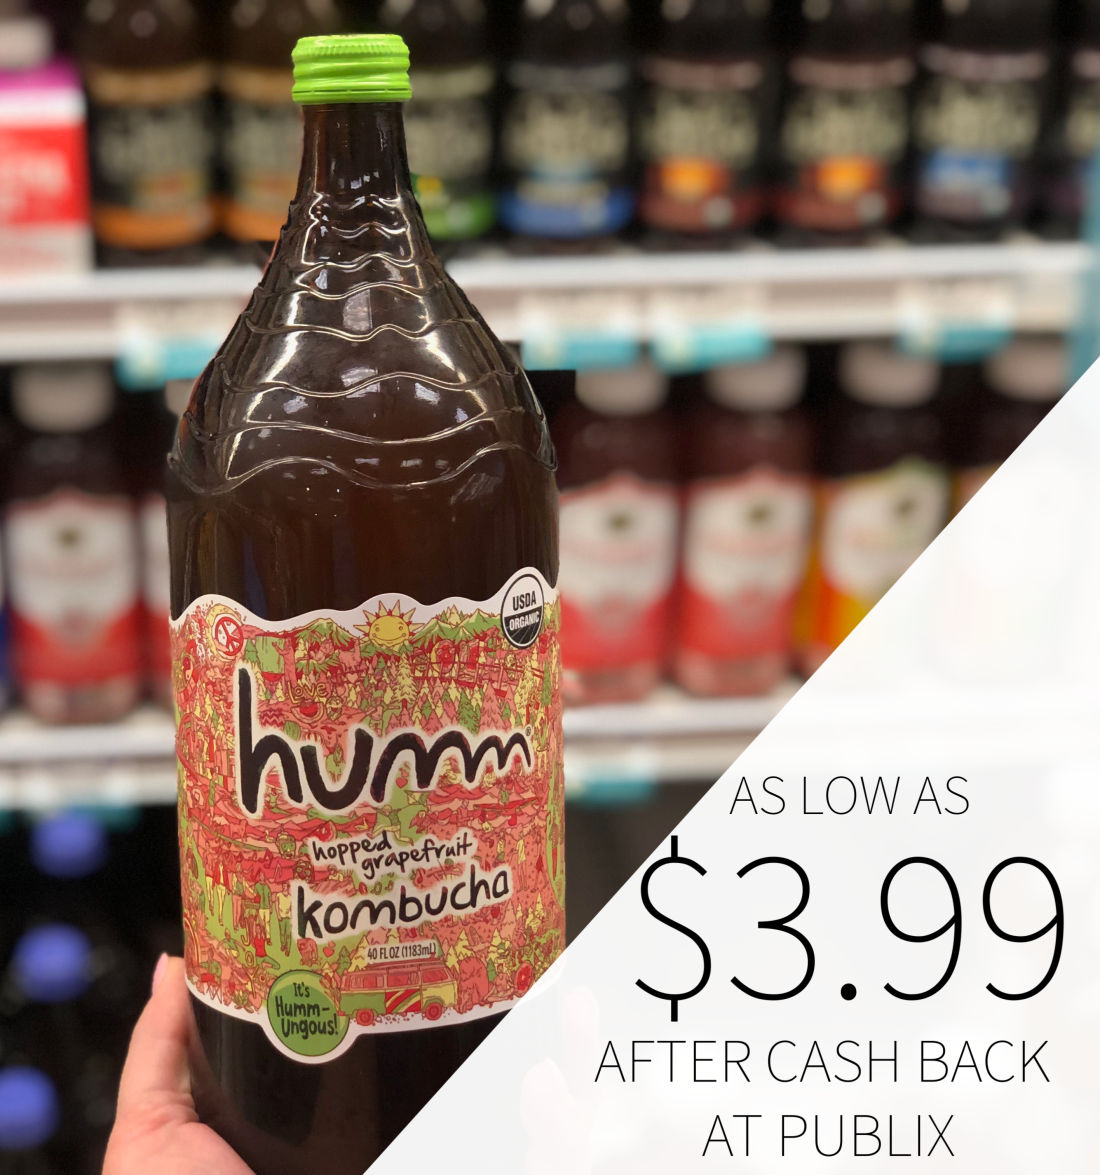 Humm Kombucha As Low As $3.99 At Publix